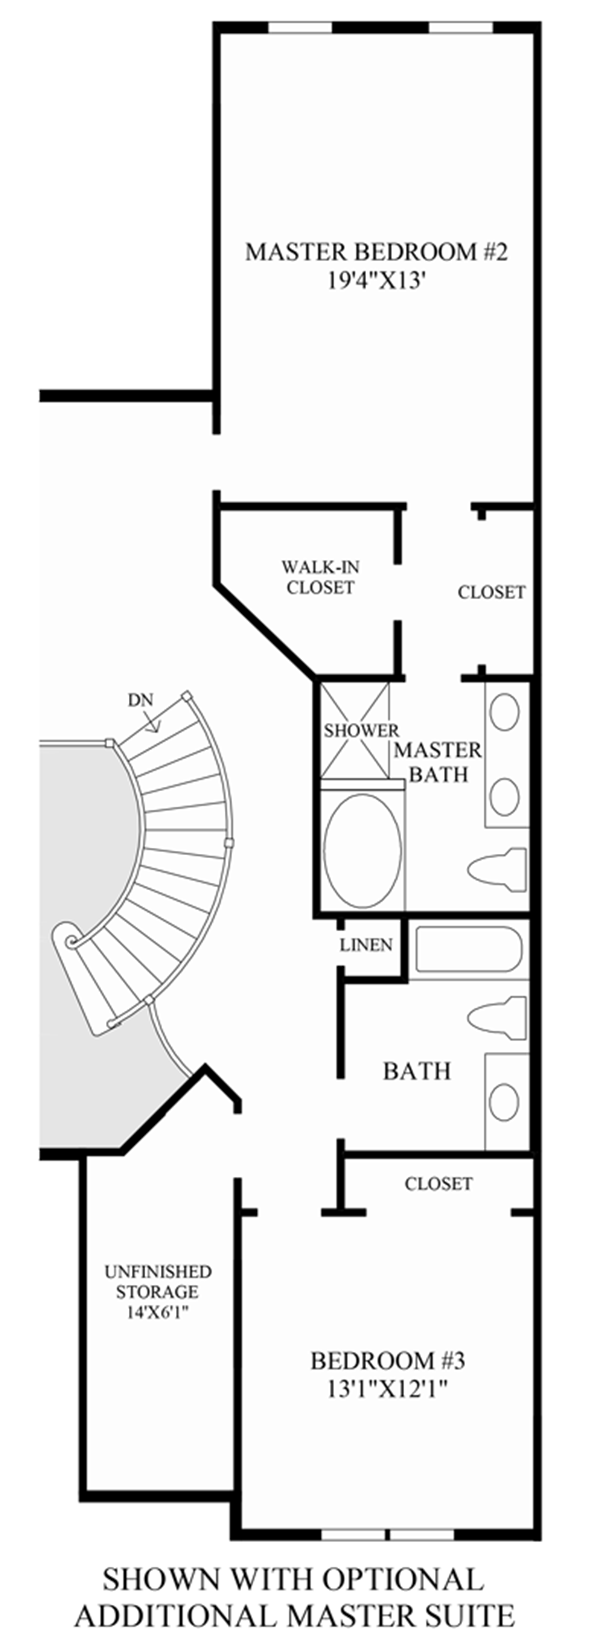 Optional Additional Master Suite